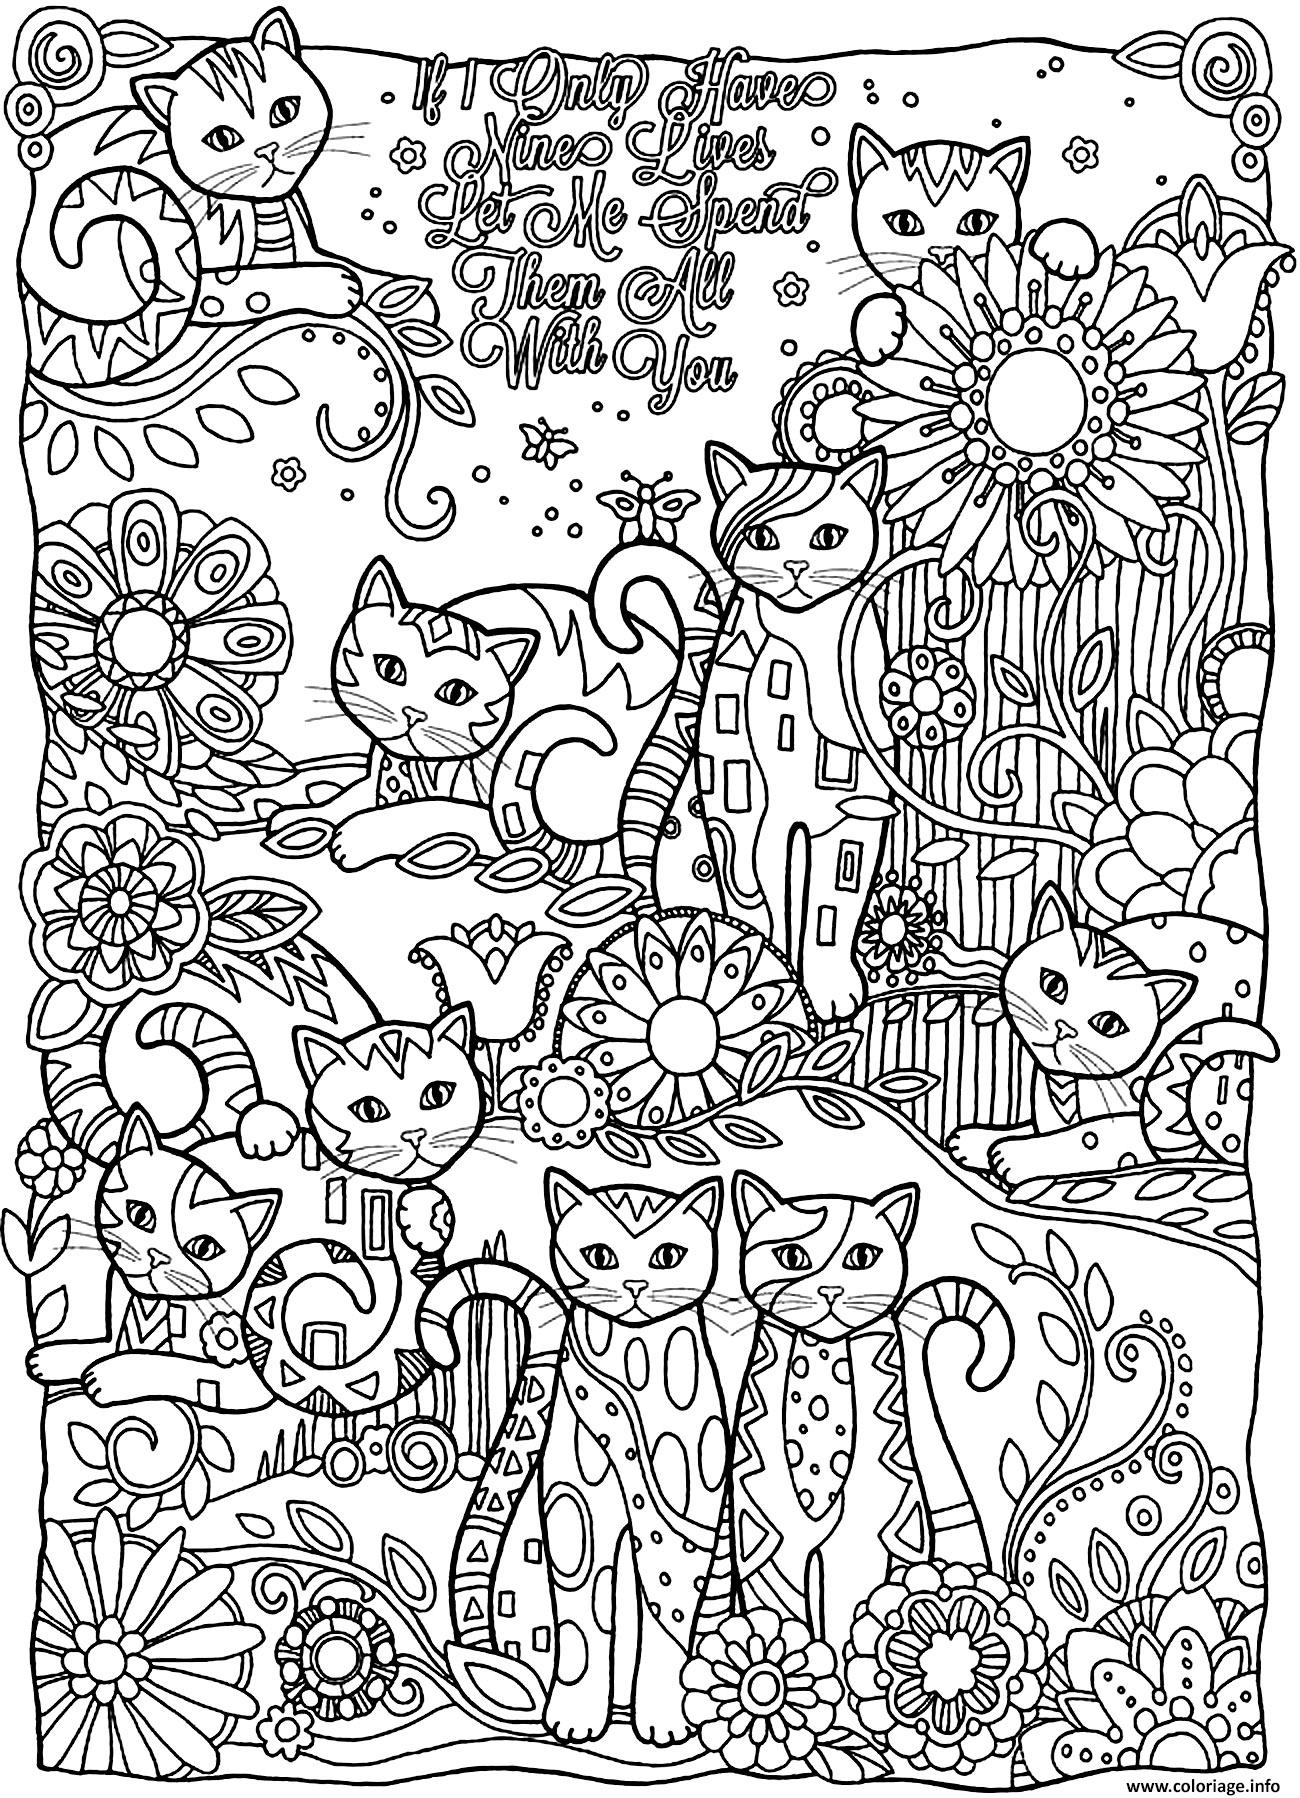 Coloriage Adulte Animaux Plein Chats Dessin